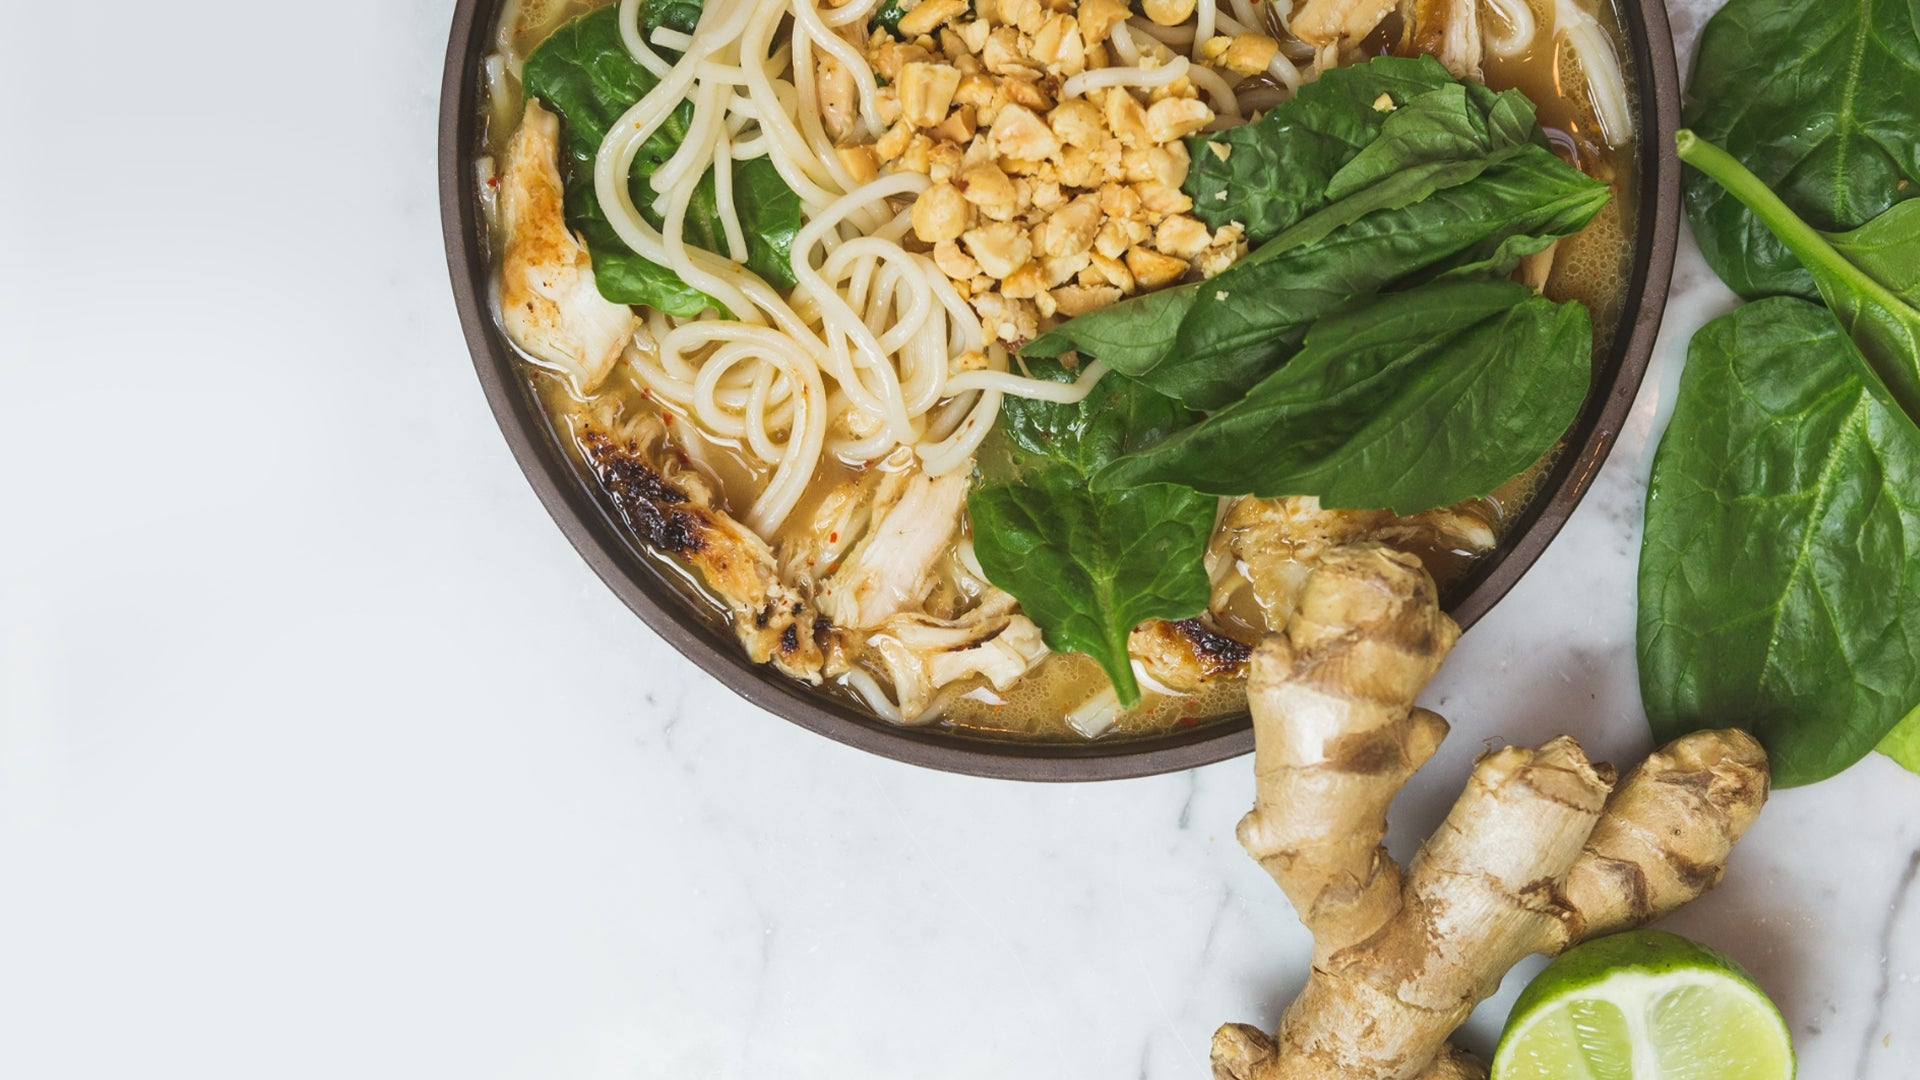 The Best Vegan Dishes To Eat In South East Asia